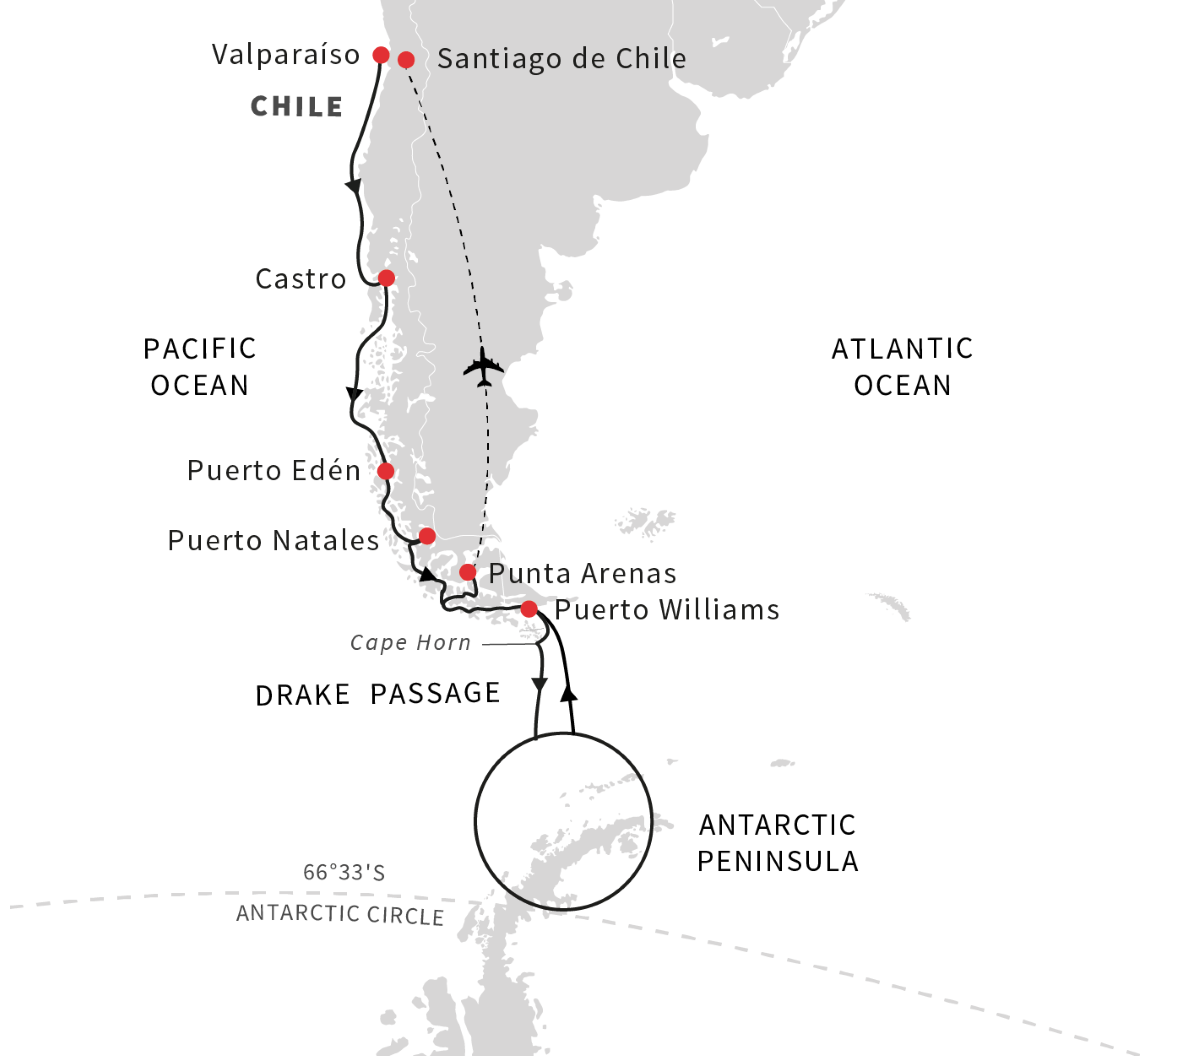 Antarctica, Patagonia, Chilean Fjords - Voyage of Discovery (Southbound) 2021